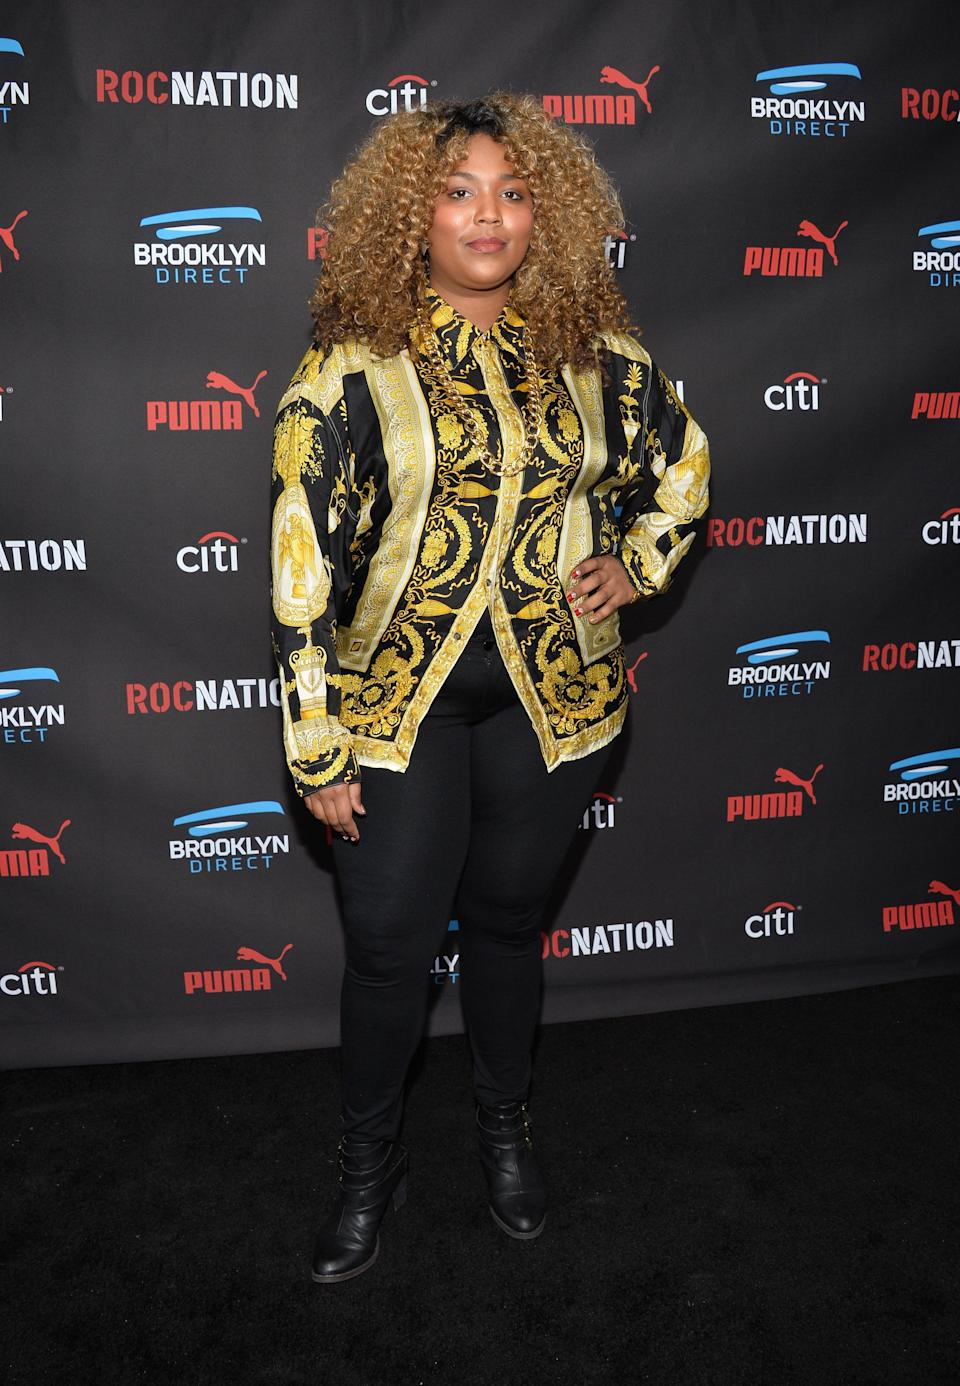 Lizzo was spotted wearing a black and gold Versace top with black pants to the 2015 Roc Nation Brunch. She's definitely come a long way since then!